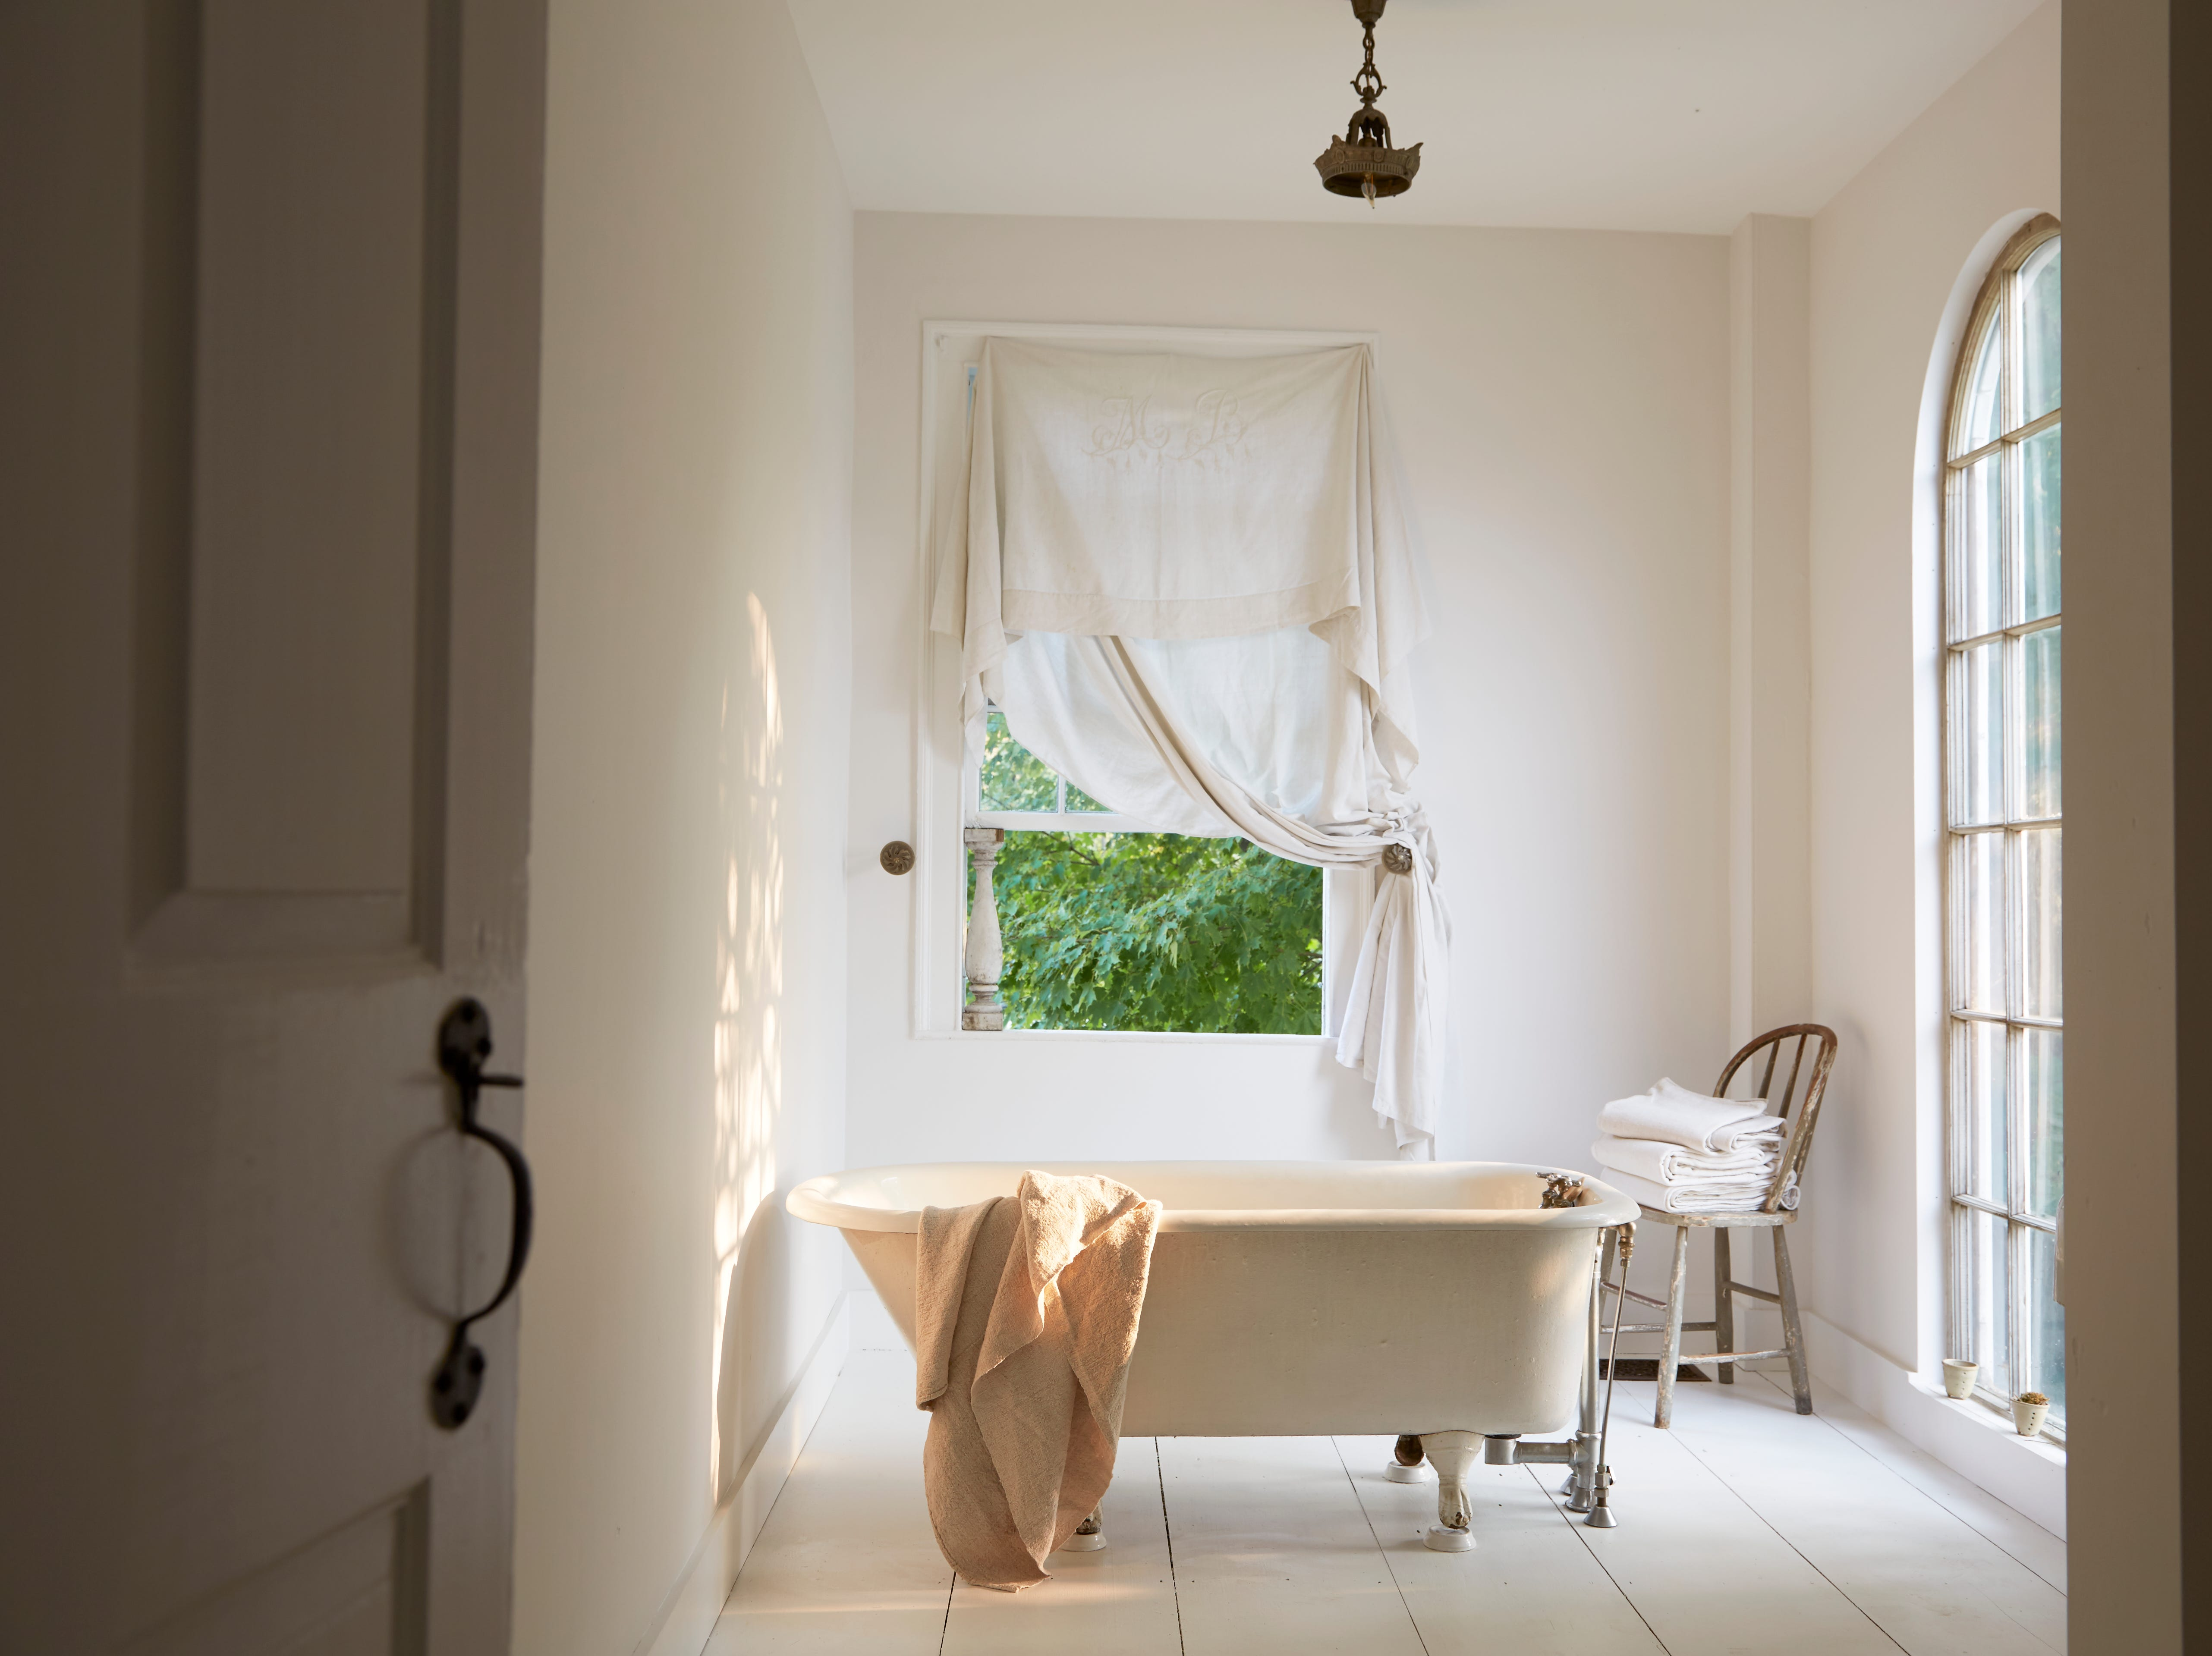 A salvaged tub in Vermont faces a west-facing arched window with a gorgeous view of the mountains.